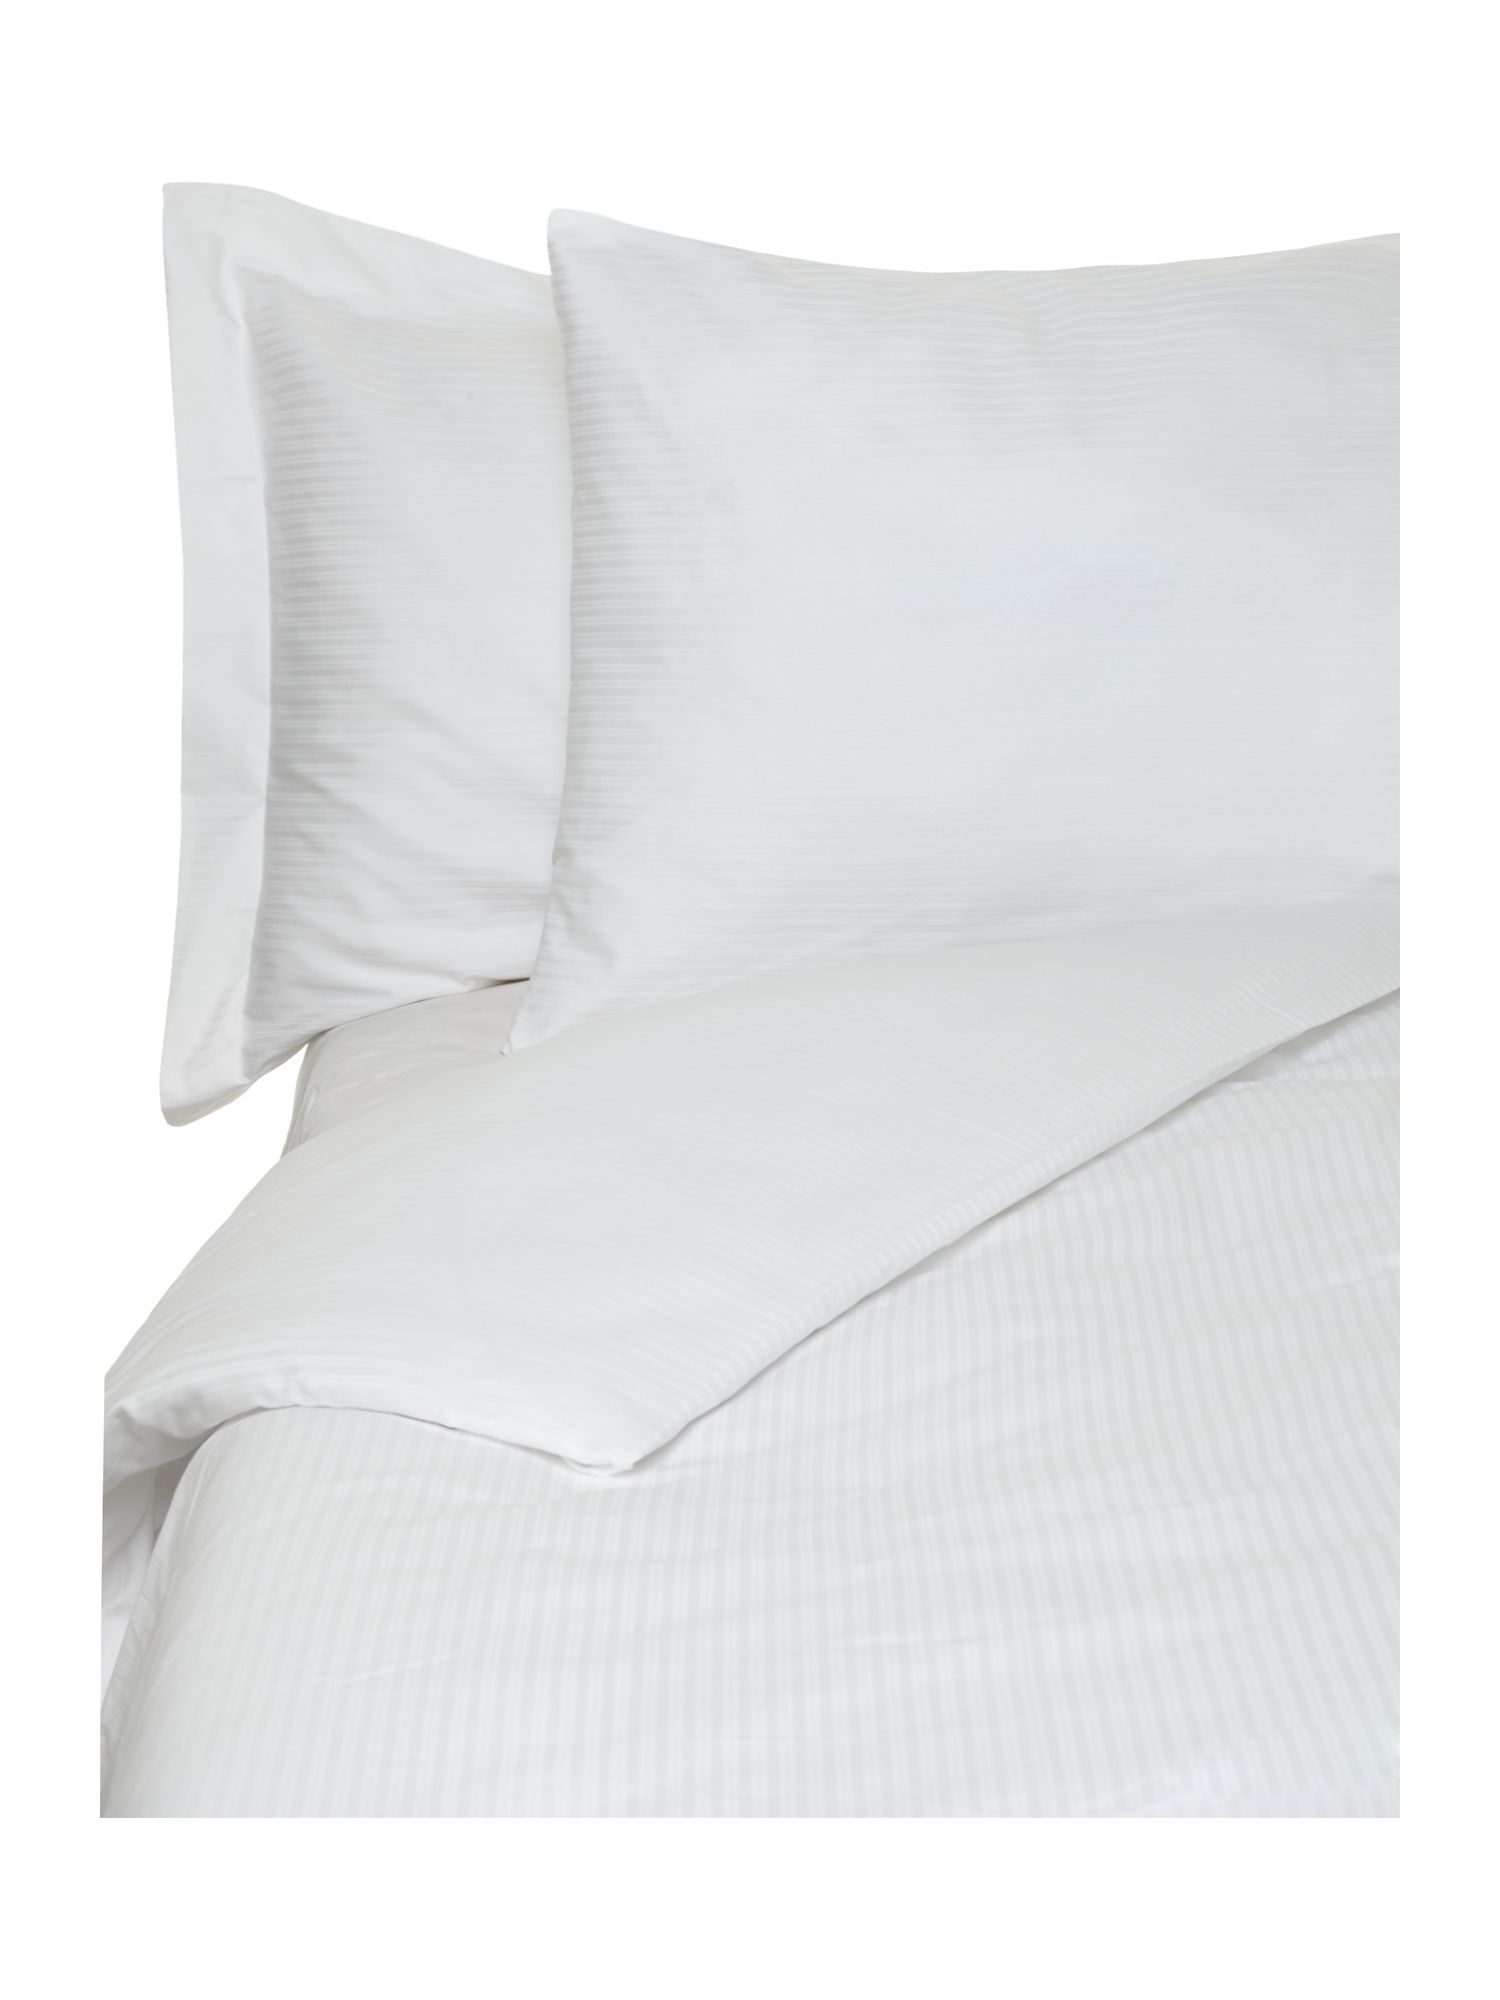 Dobby stripe bed linen in white